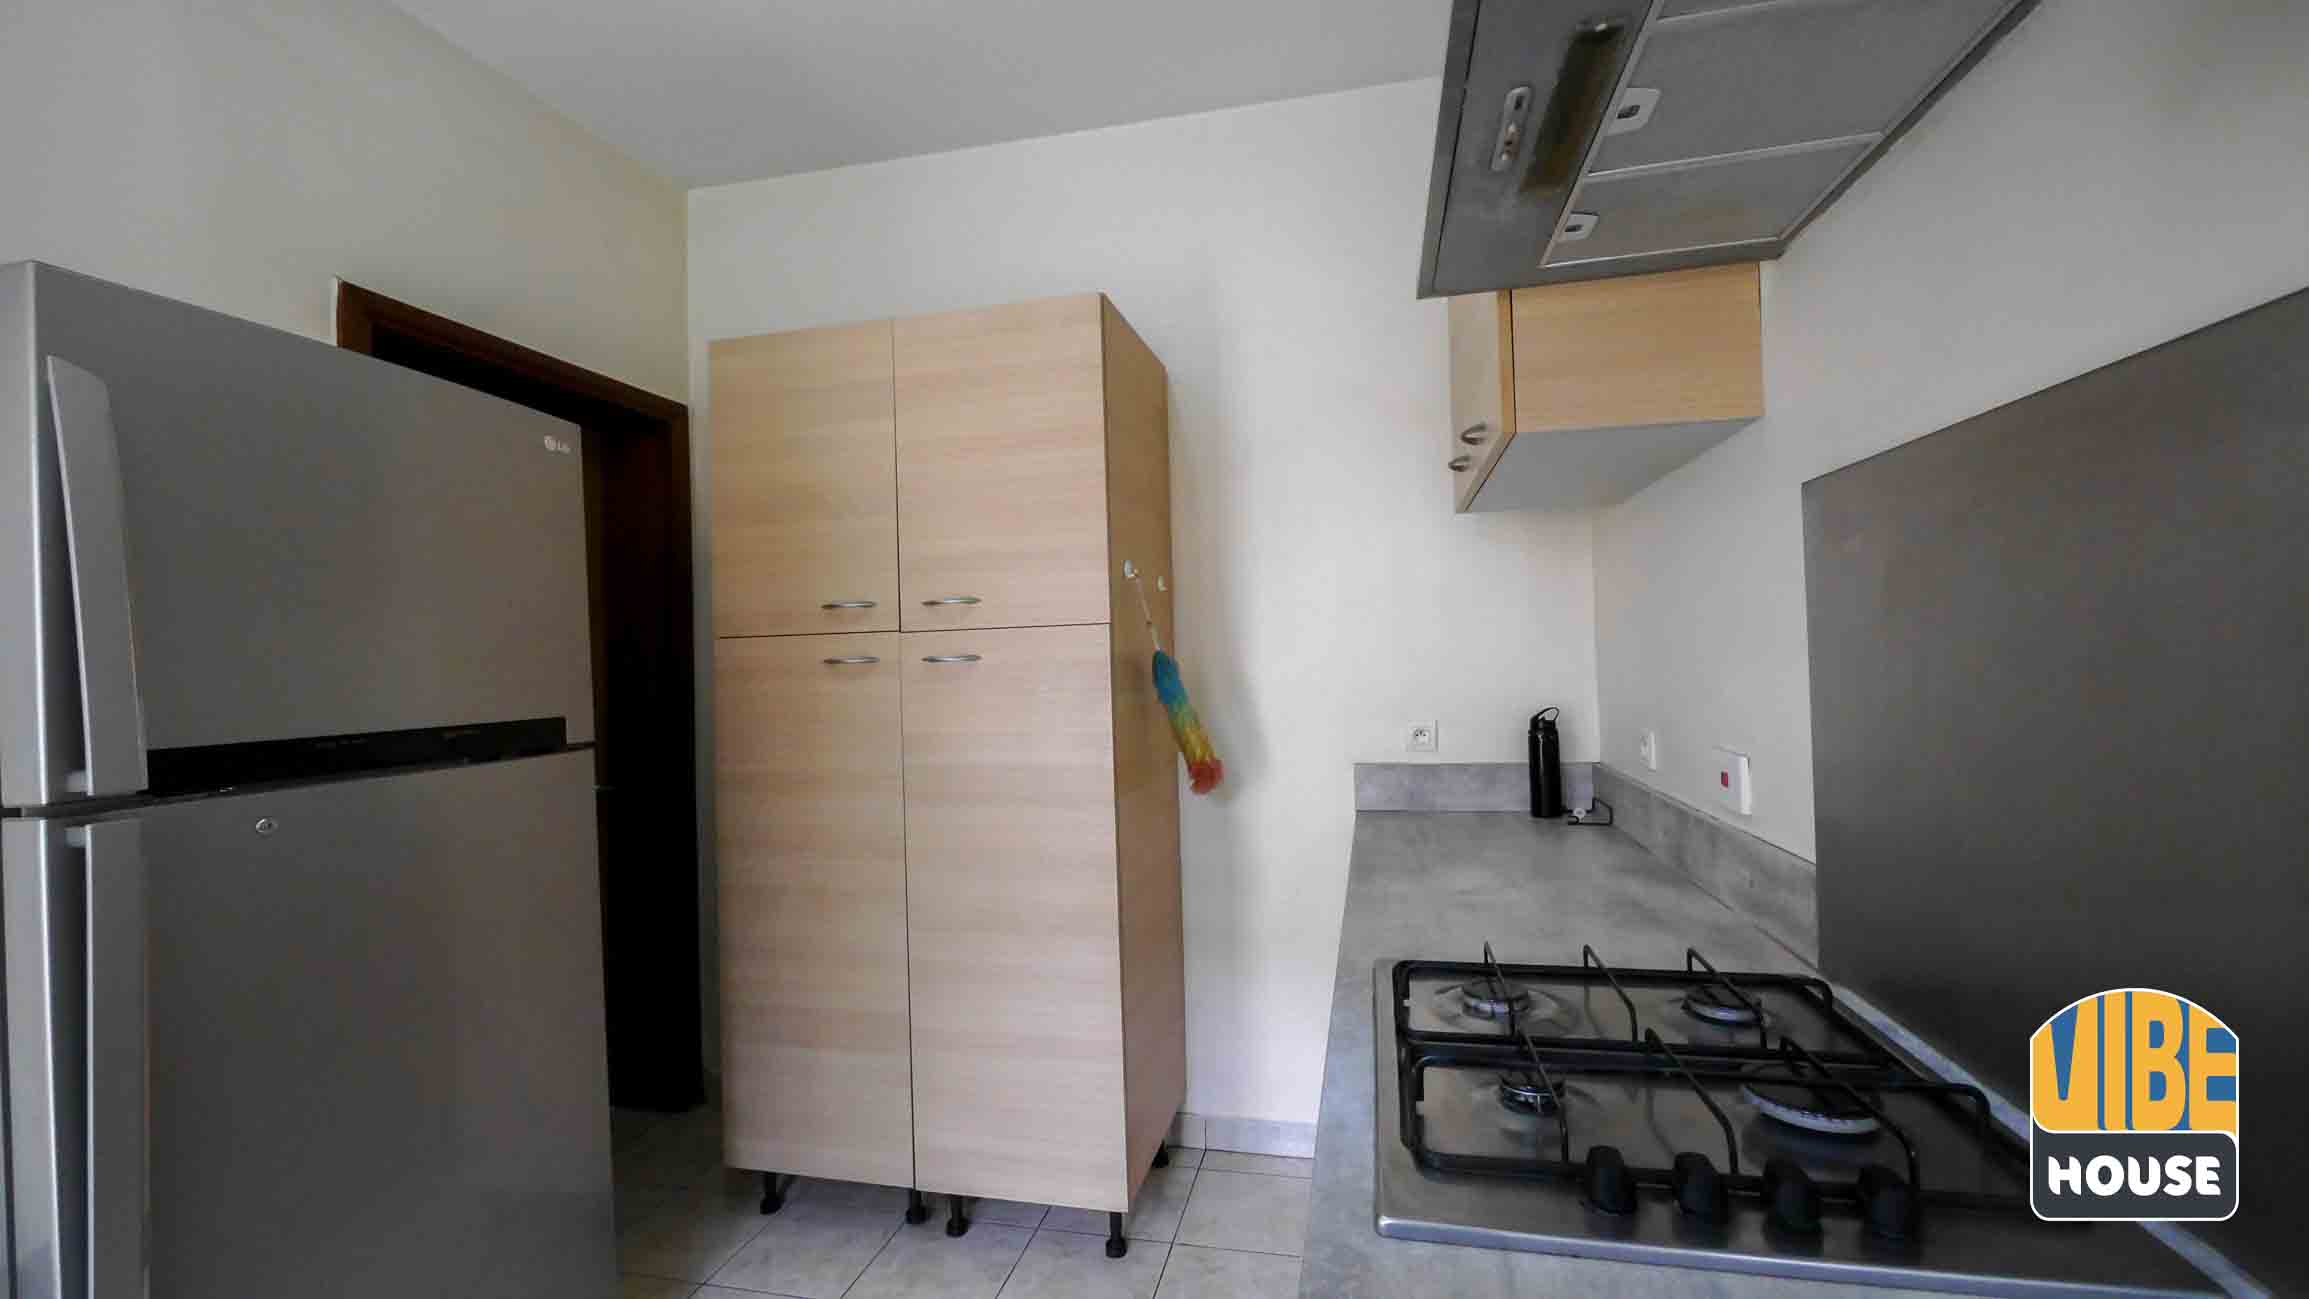 Fully furnished house for rent with pool in Kibagabaga, Kigali